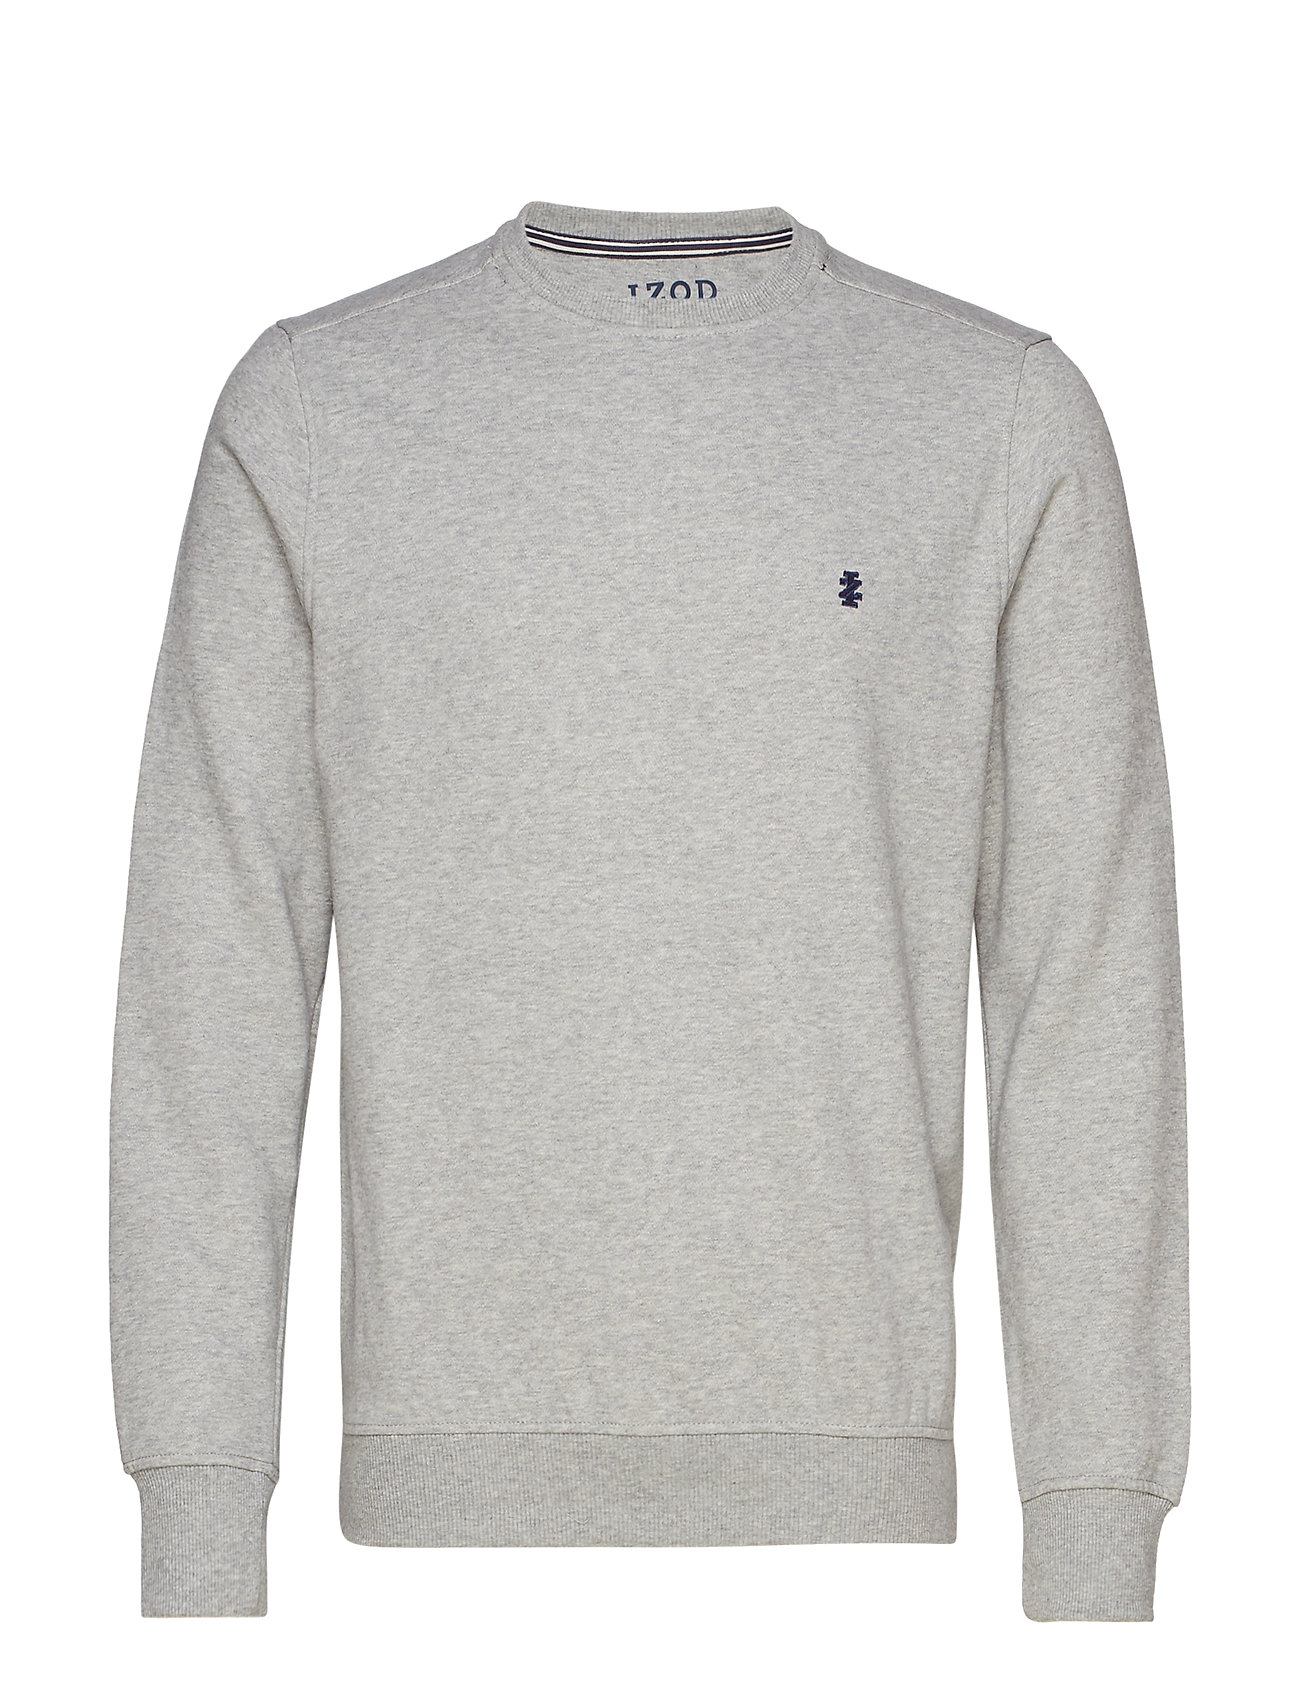 IZOD SUPER SOFT SOLID FLEECE CREW - LIGHT GREY HTR